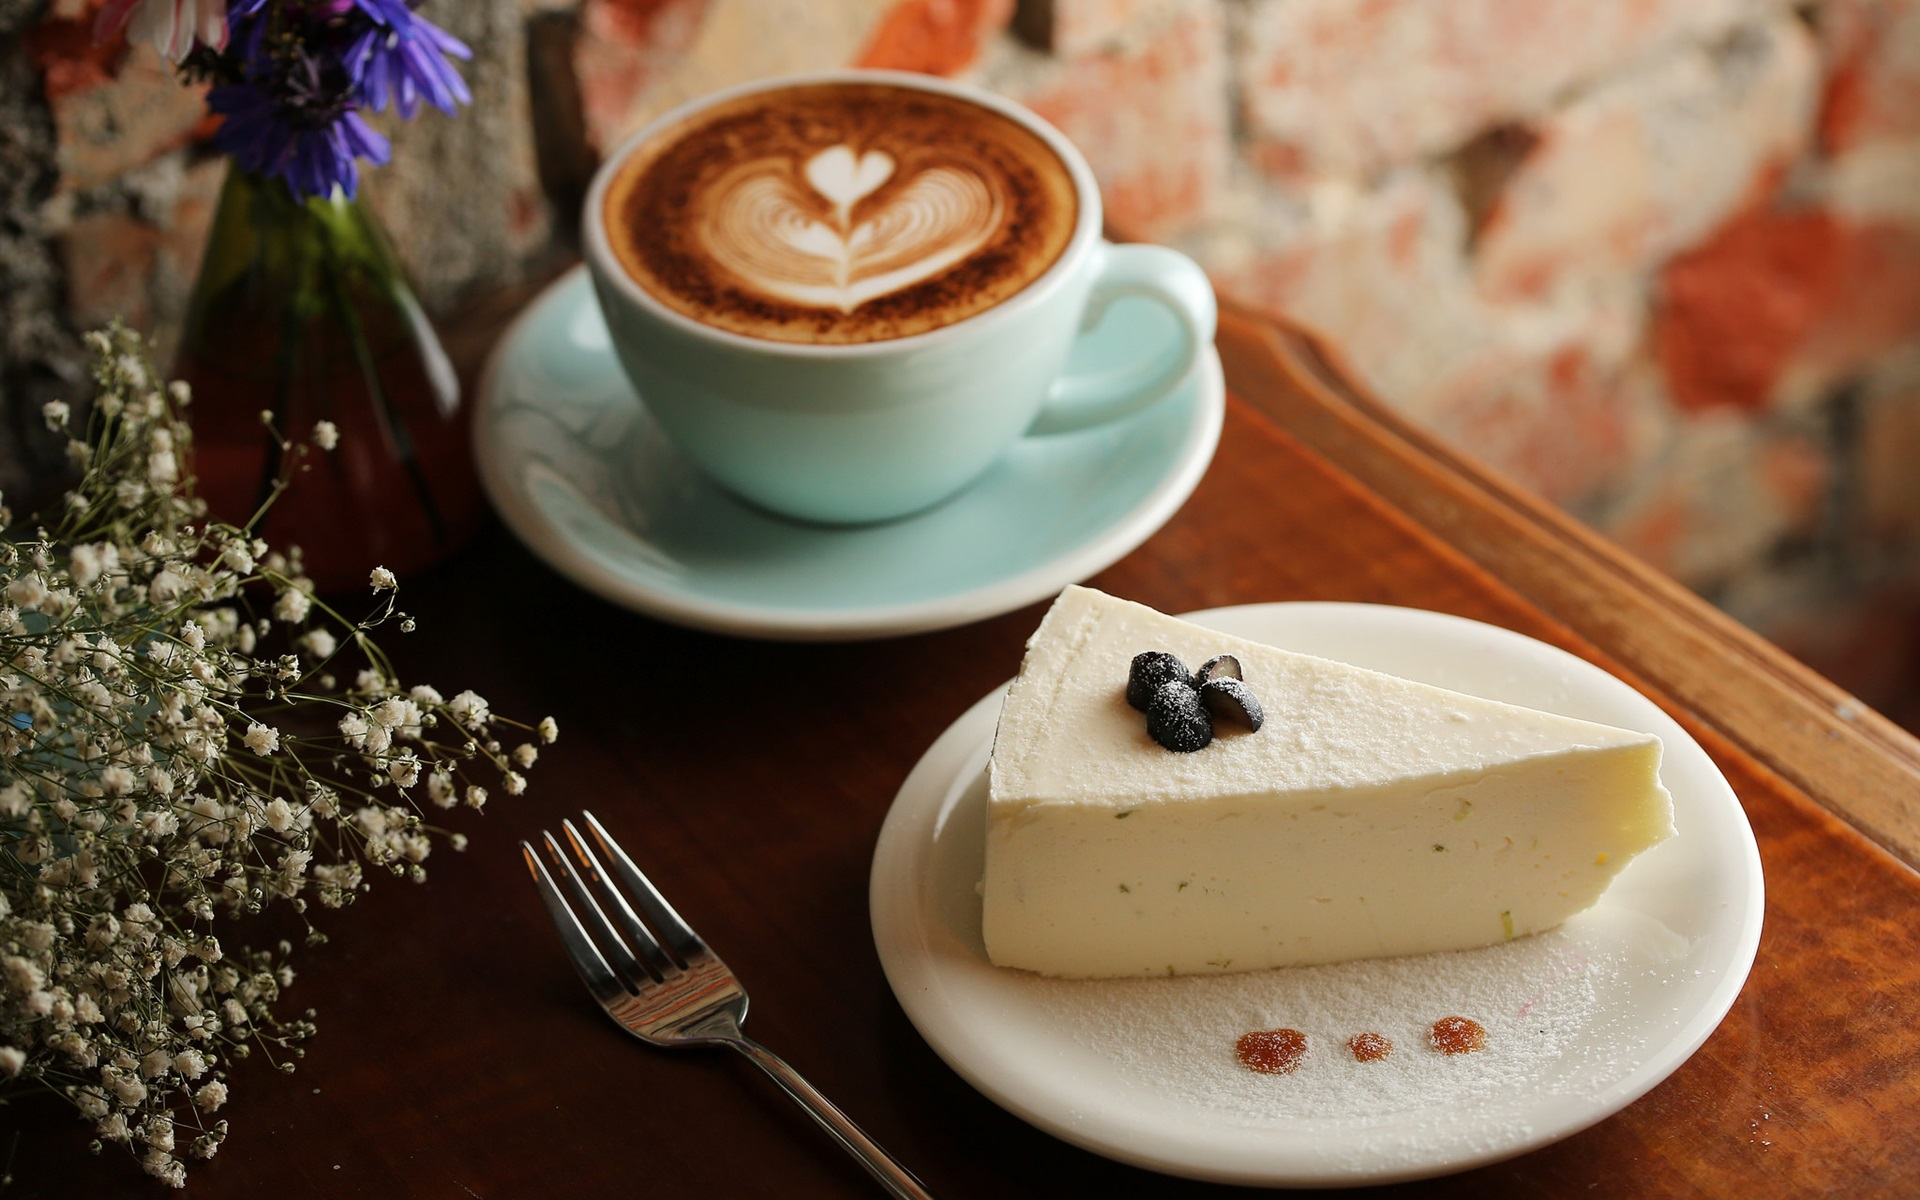 Wallpaper Cheese And Coffee Dessert 1920x1200 Hd Picture Image